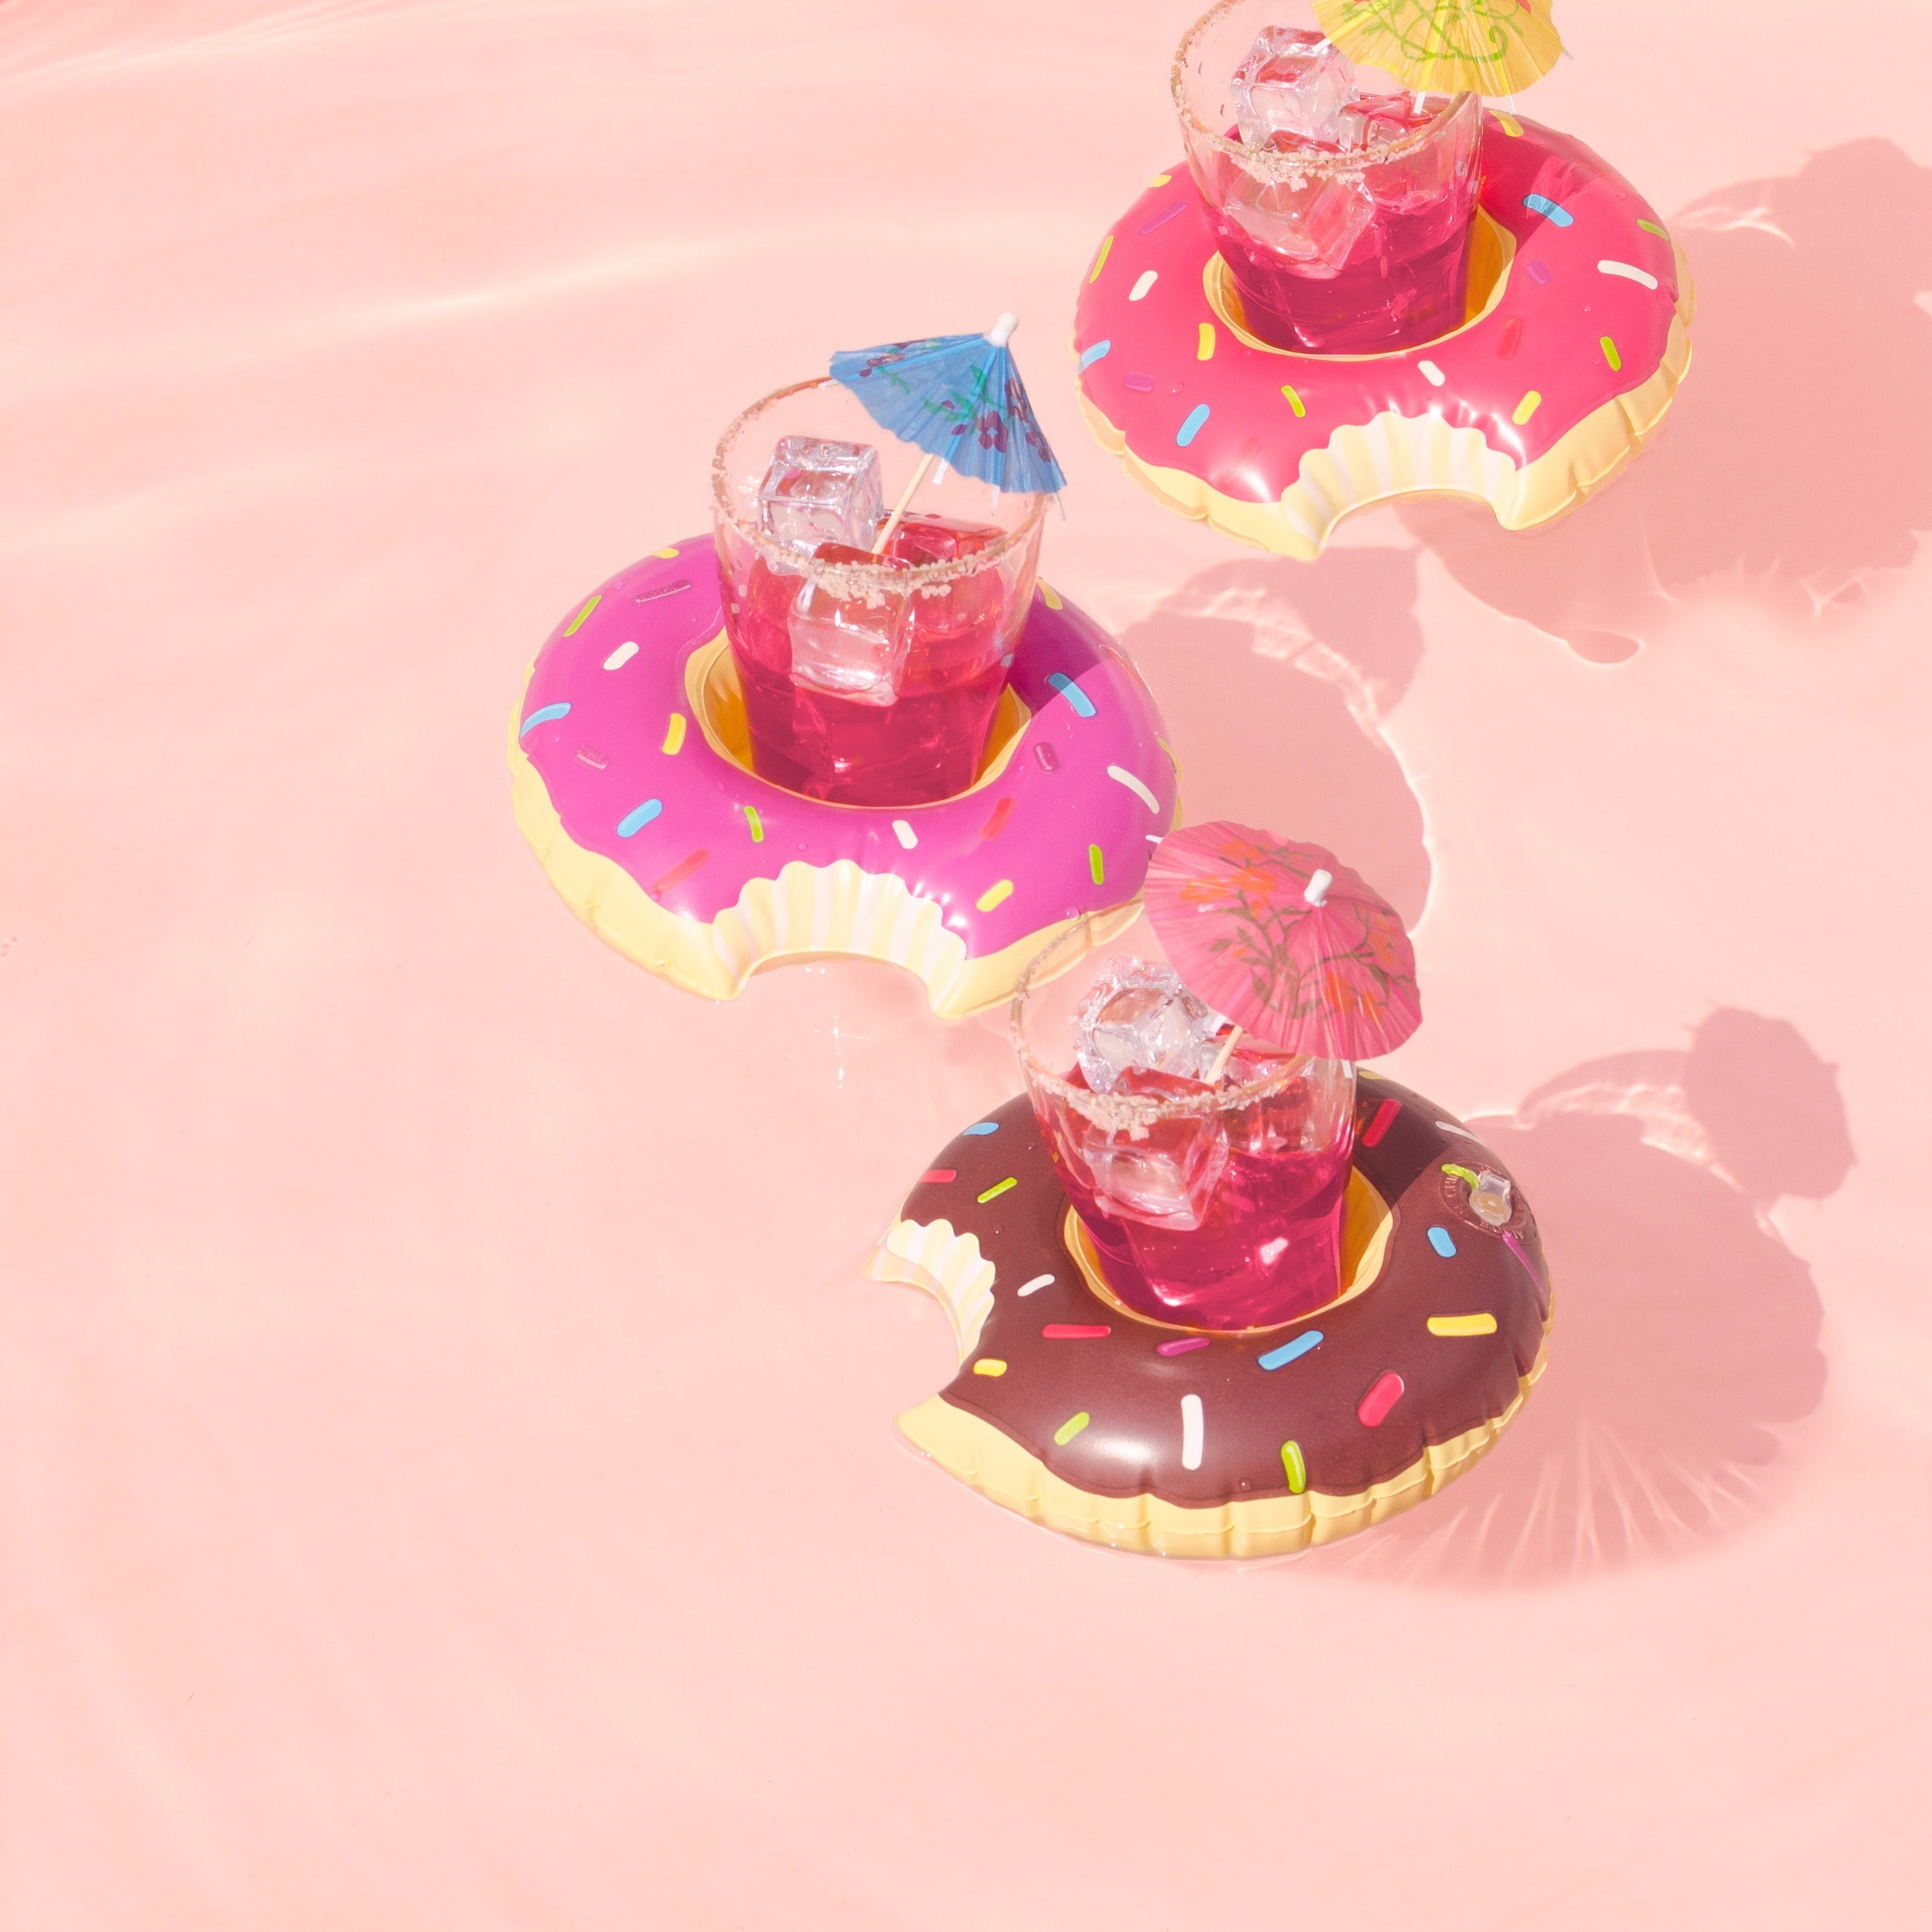 donuts floating in a swimmingpool